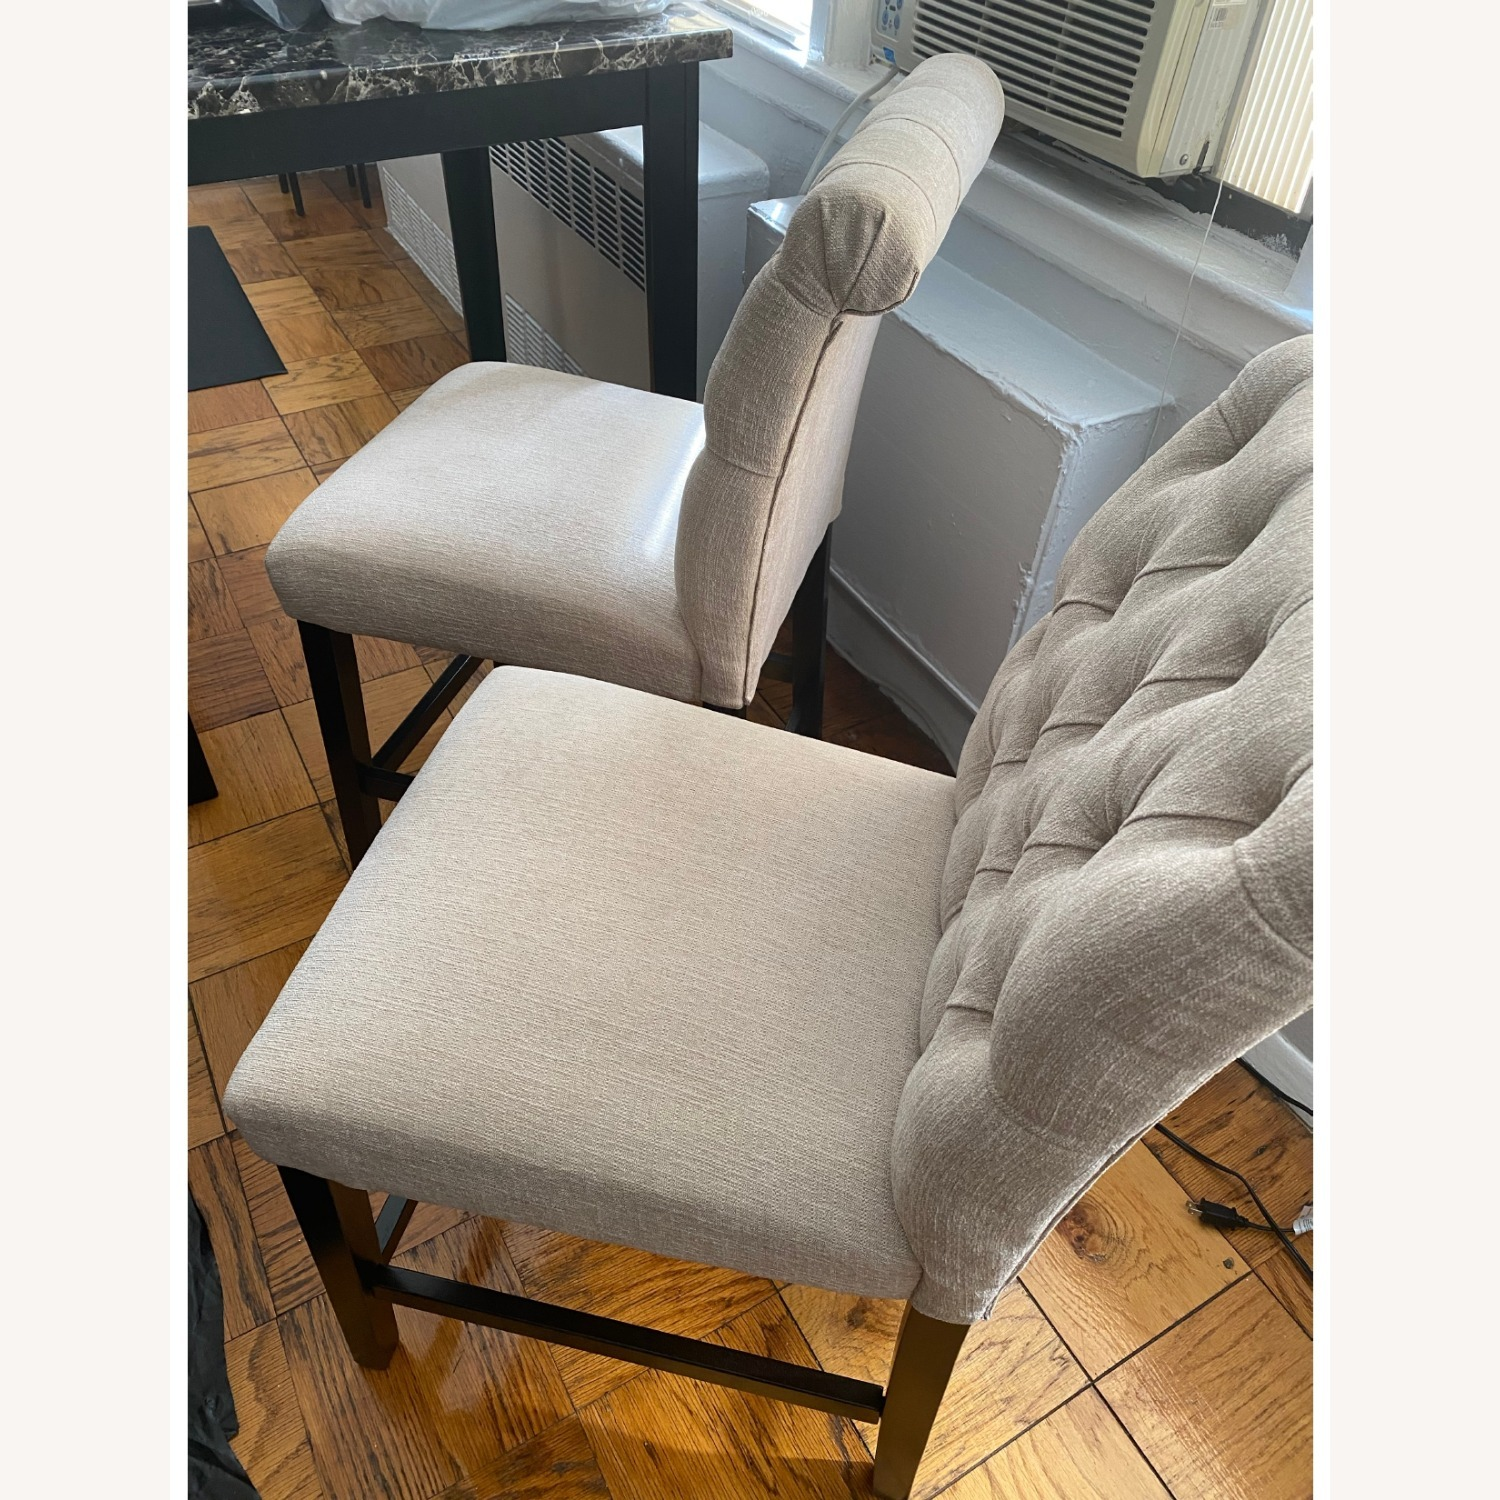 Ashley Furniture Counter Height Dining Chairs, 2 - image-2